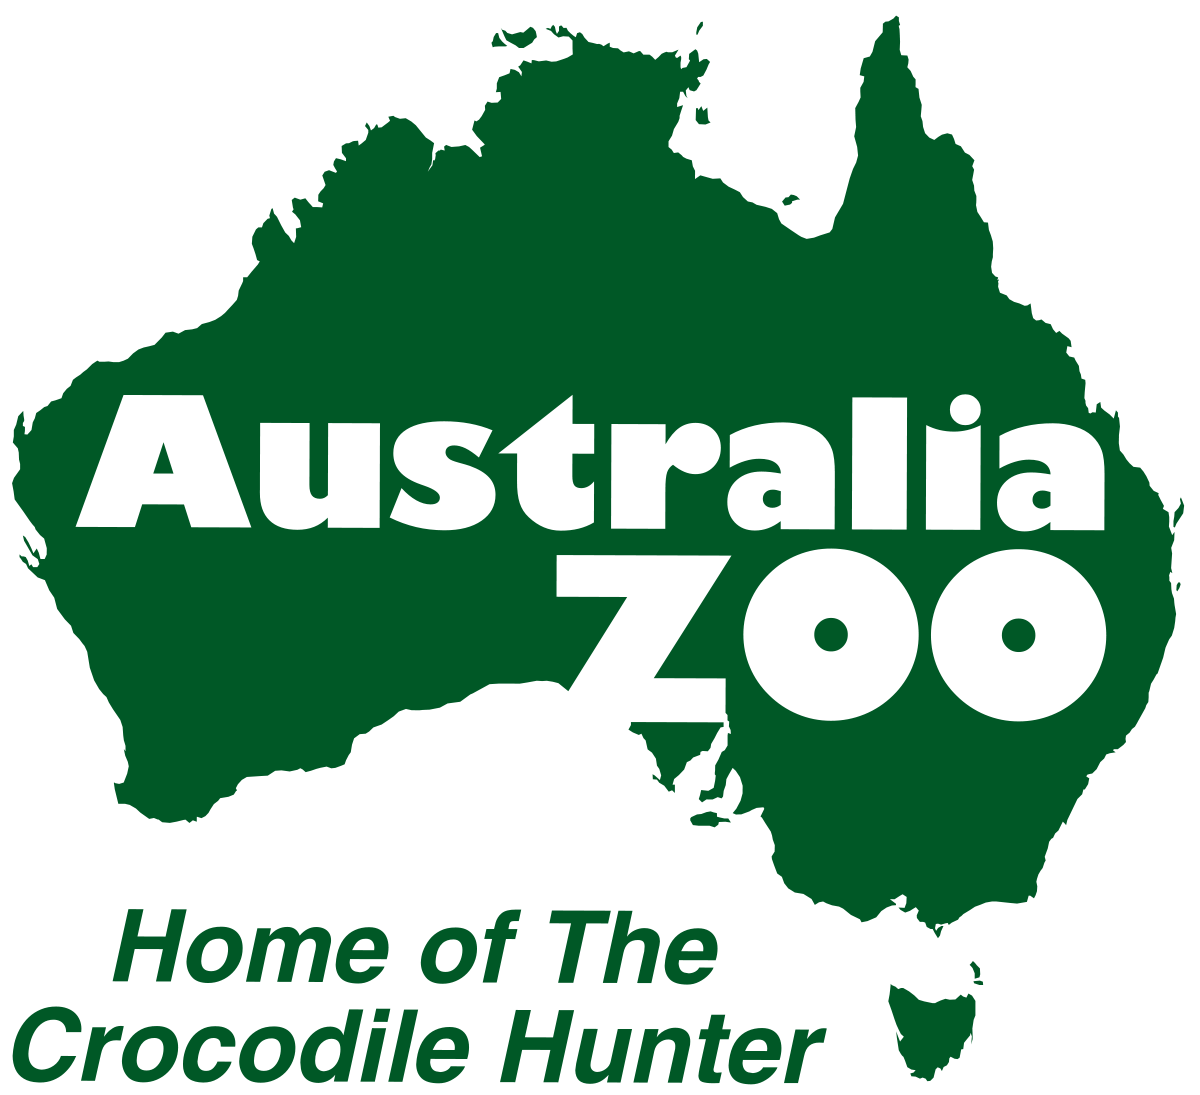 Australia wikipedia . Zoo vector logo graphic freeuse stock